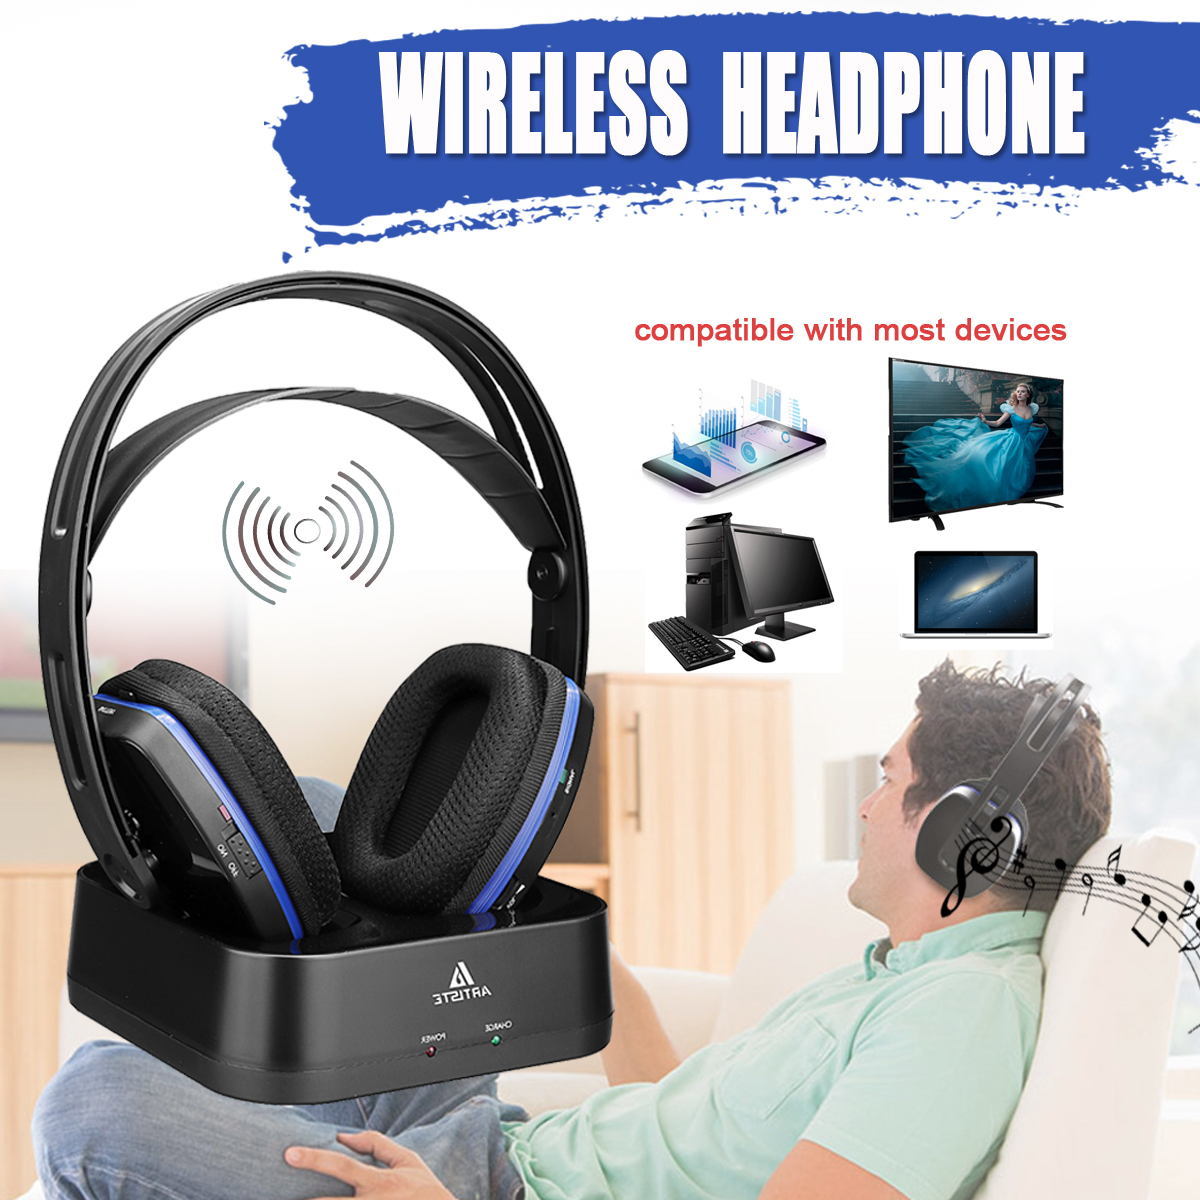 Artiste D2 2.4GHz HiFi Bluetooth Headphone Deep Bass Wireless TV Headphone with Transmitter Dock For Mobile Phone Music